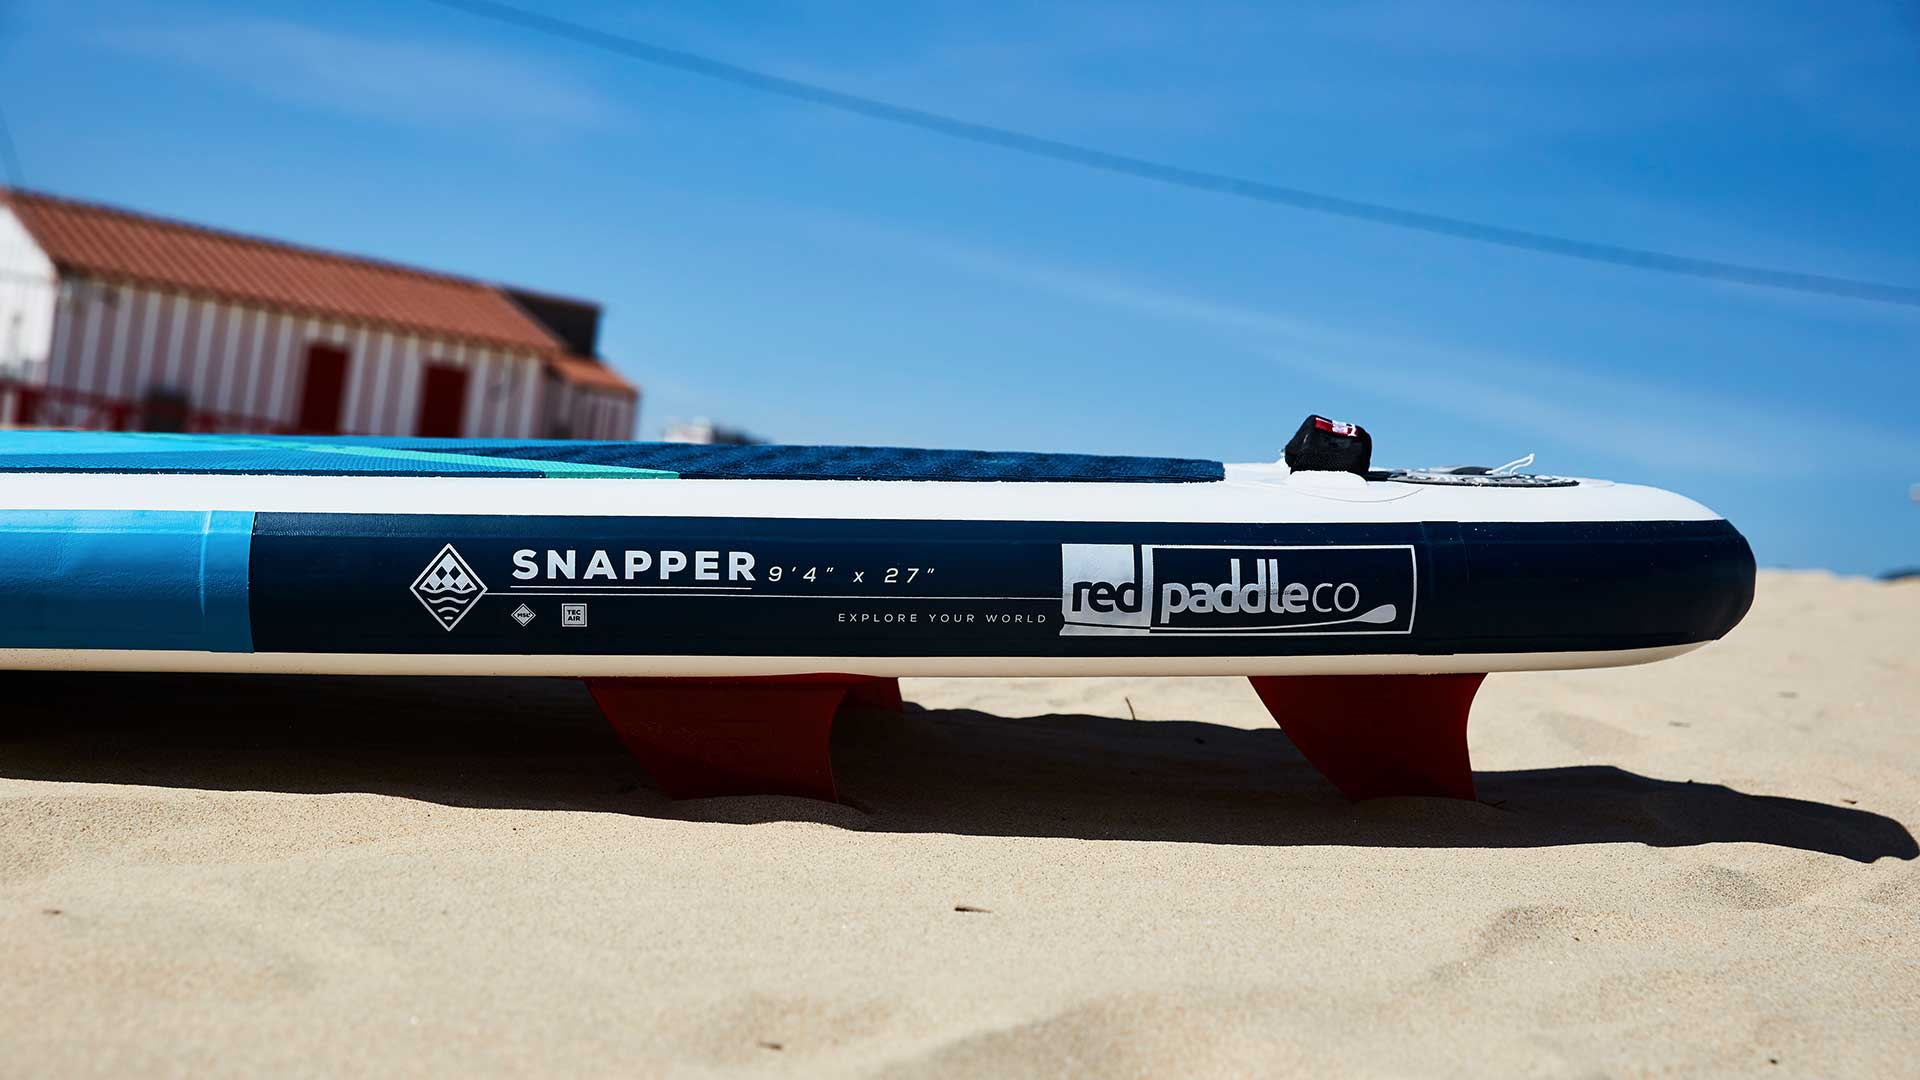 redpaddleco-94-snapper-inflatable-paddle-board-desktop-gallery-fins